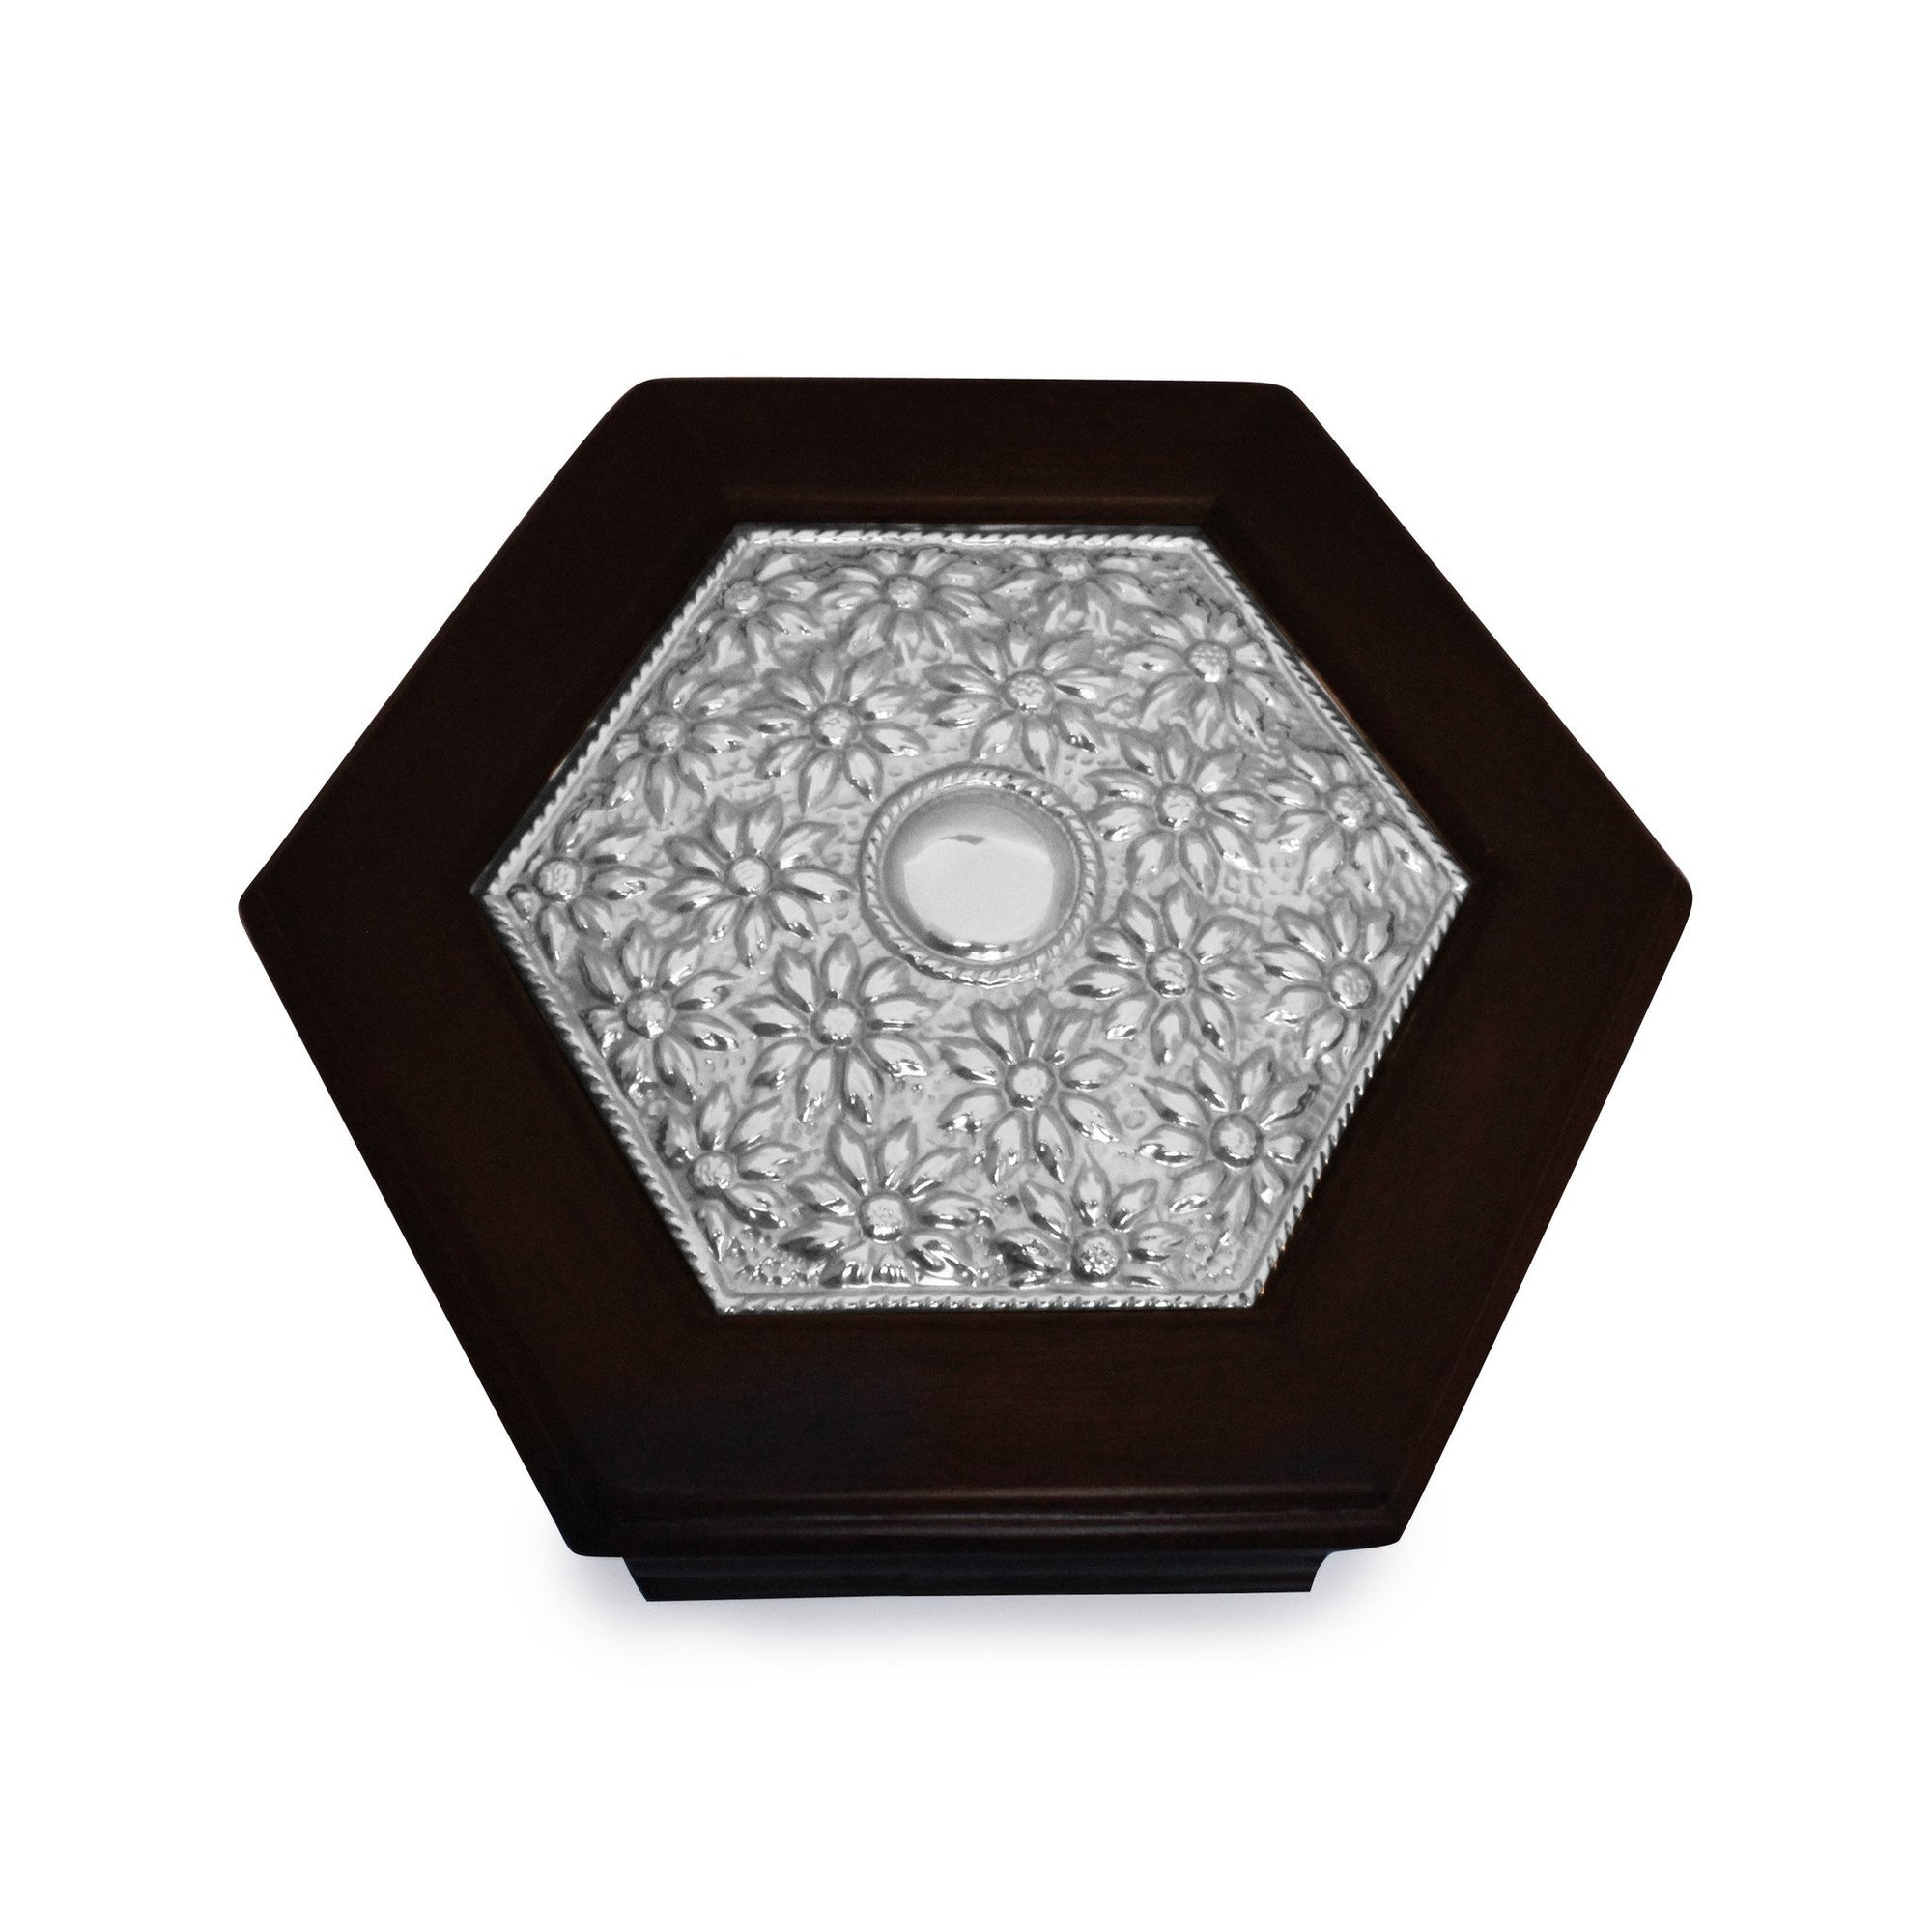 Hexagonal Keepsake Box with Sterling Silver Daisies - Qinti - The Peruvian Shop